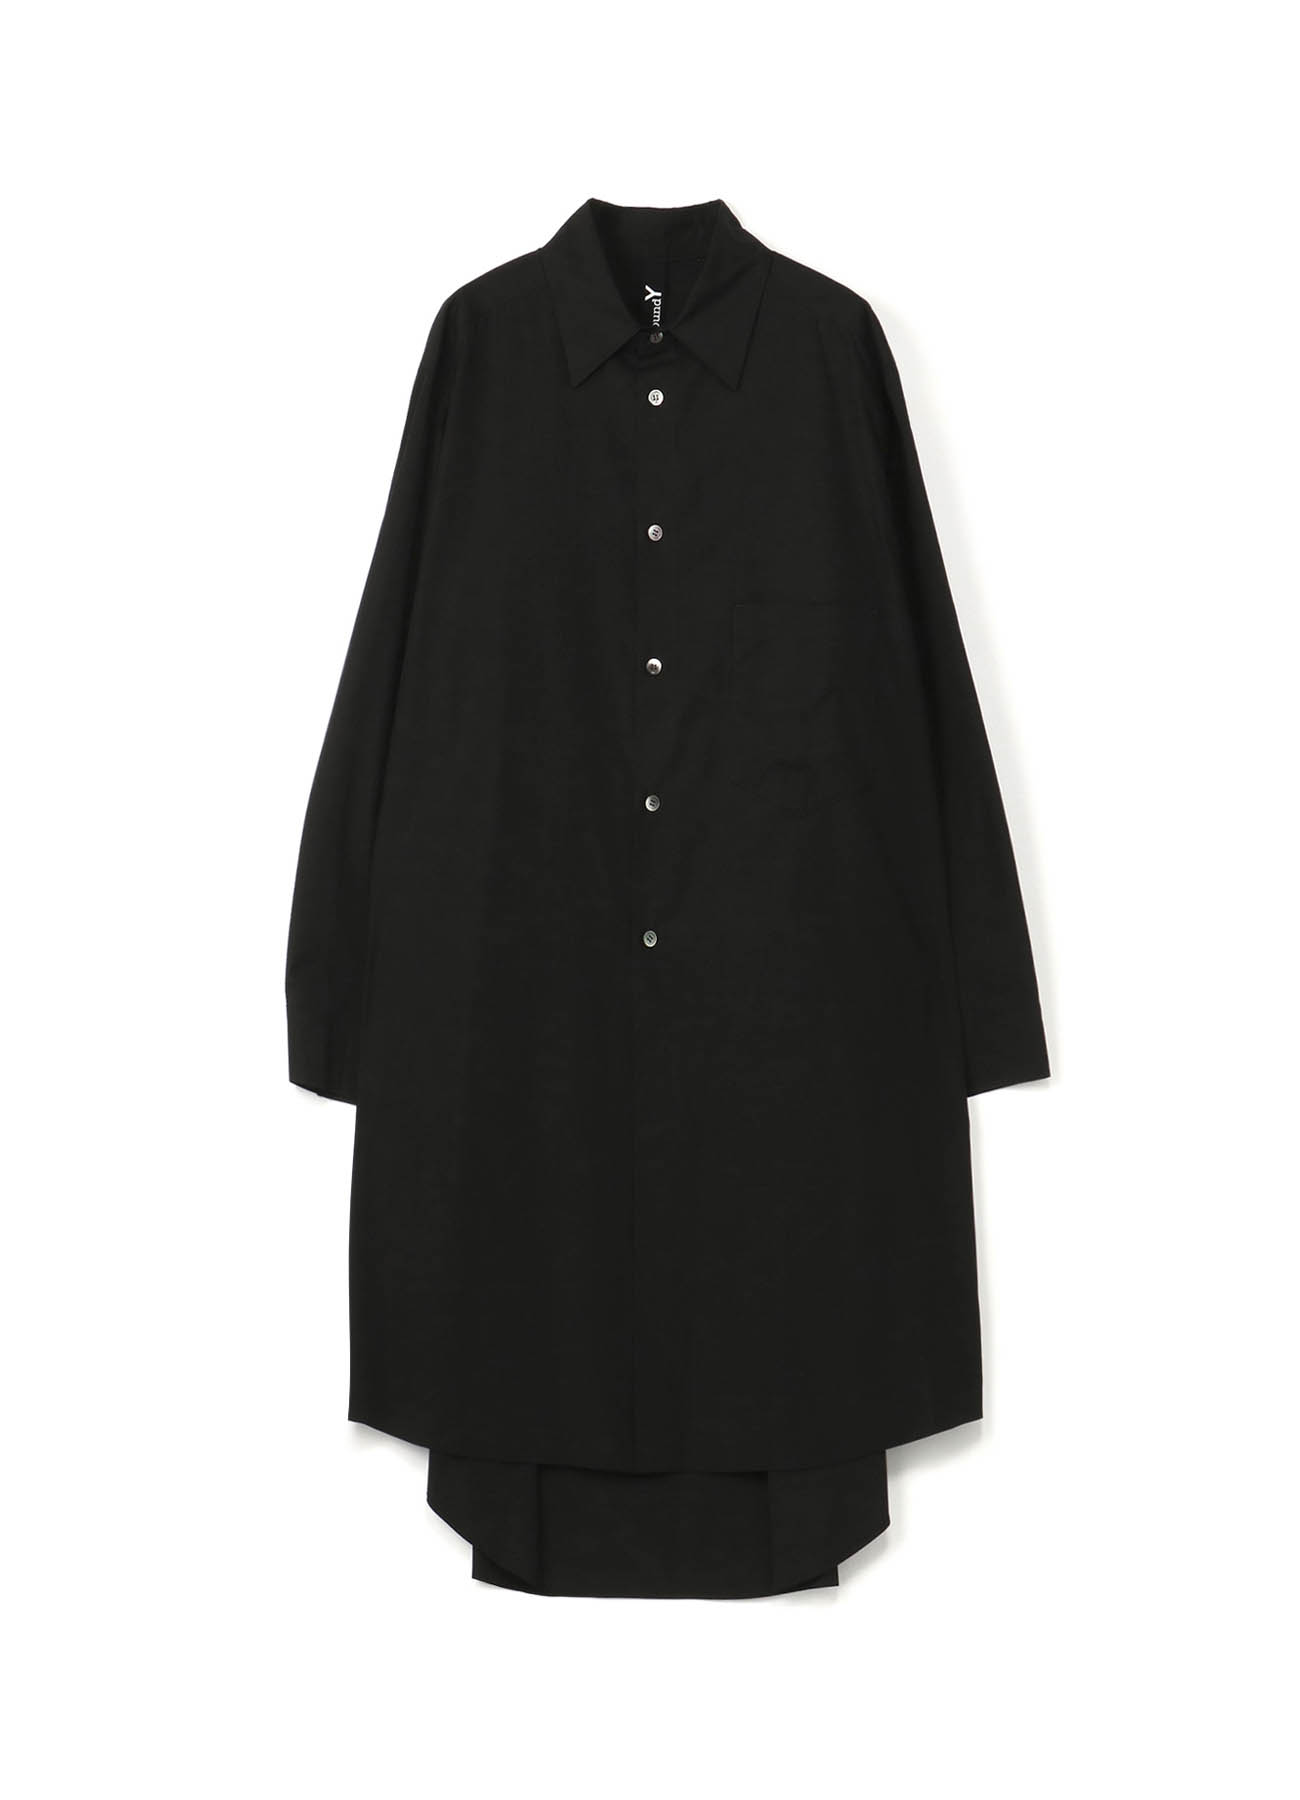 Cotton/ Broadcloth Big Shirt